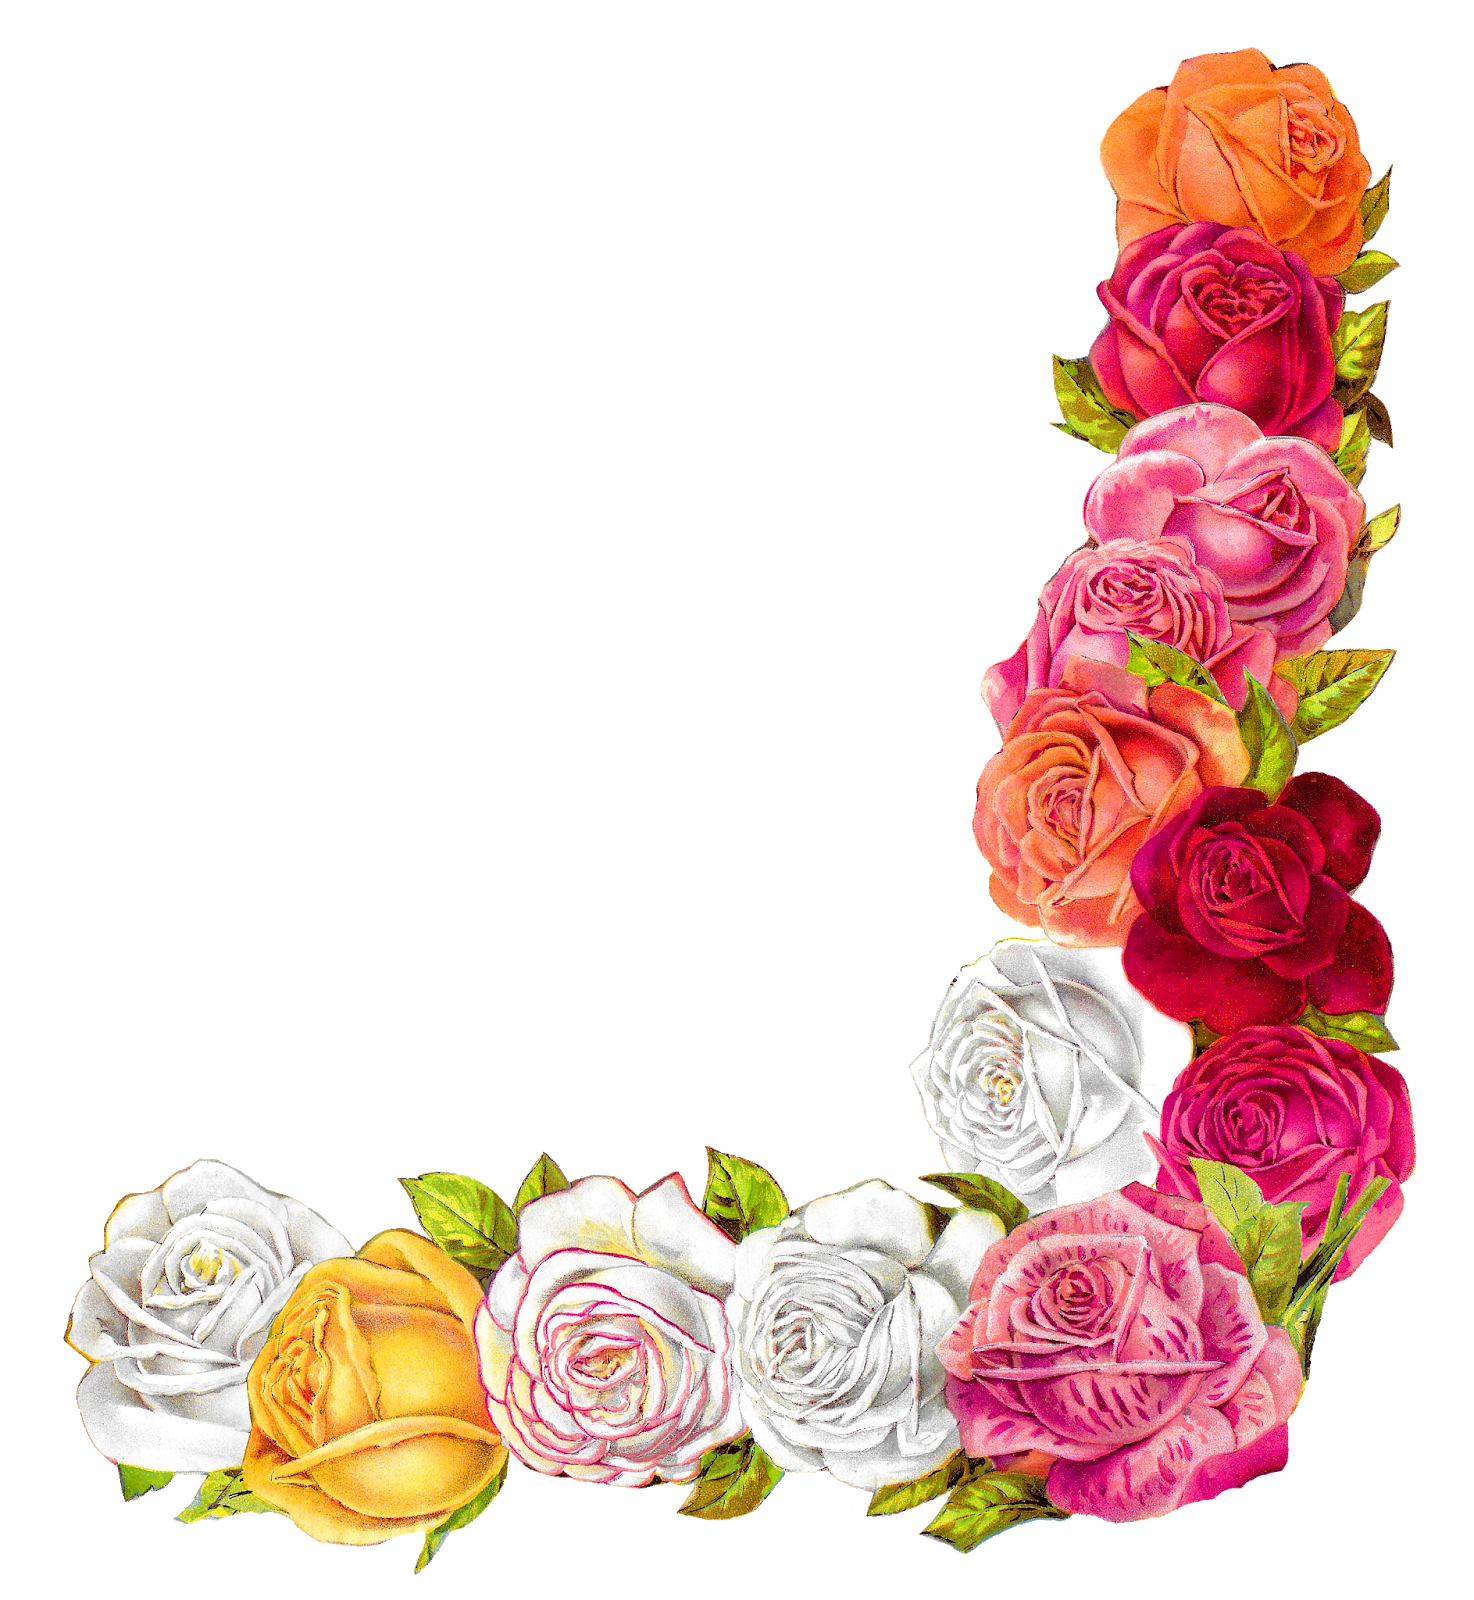 The graphics monarch digital. Clipart roses shabby chic